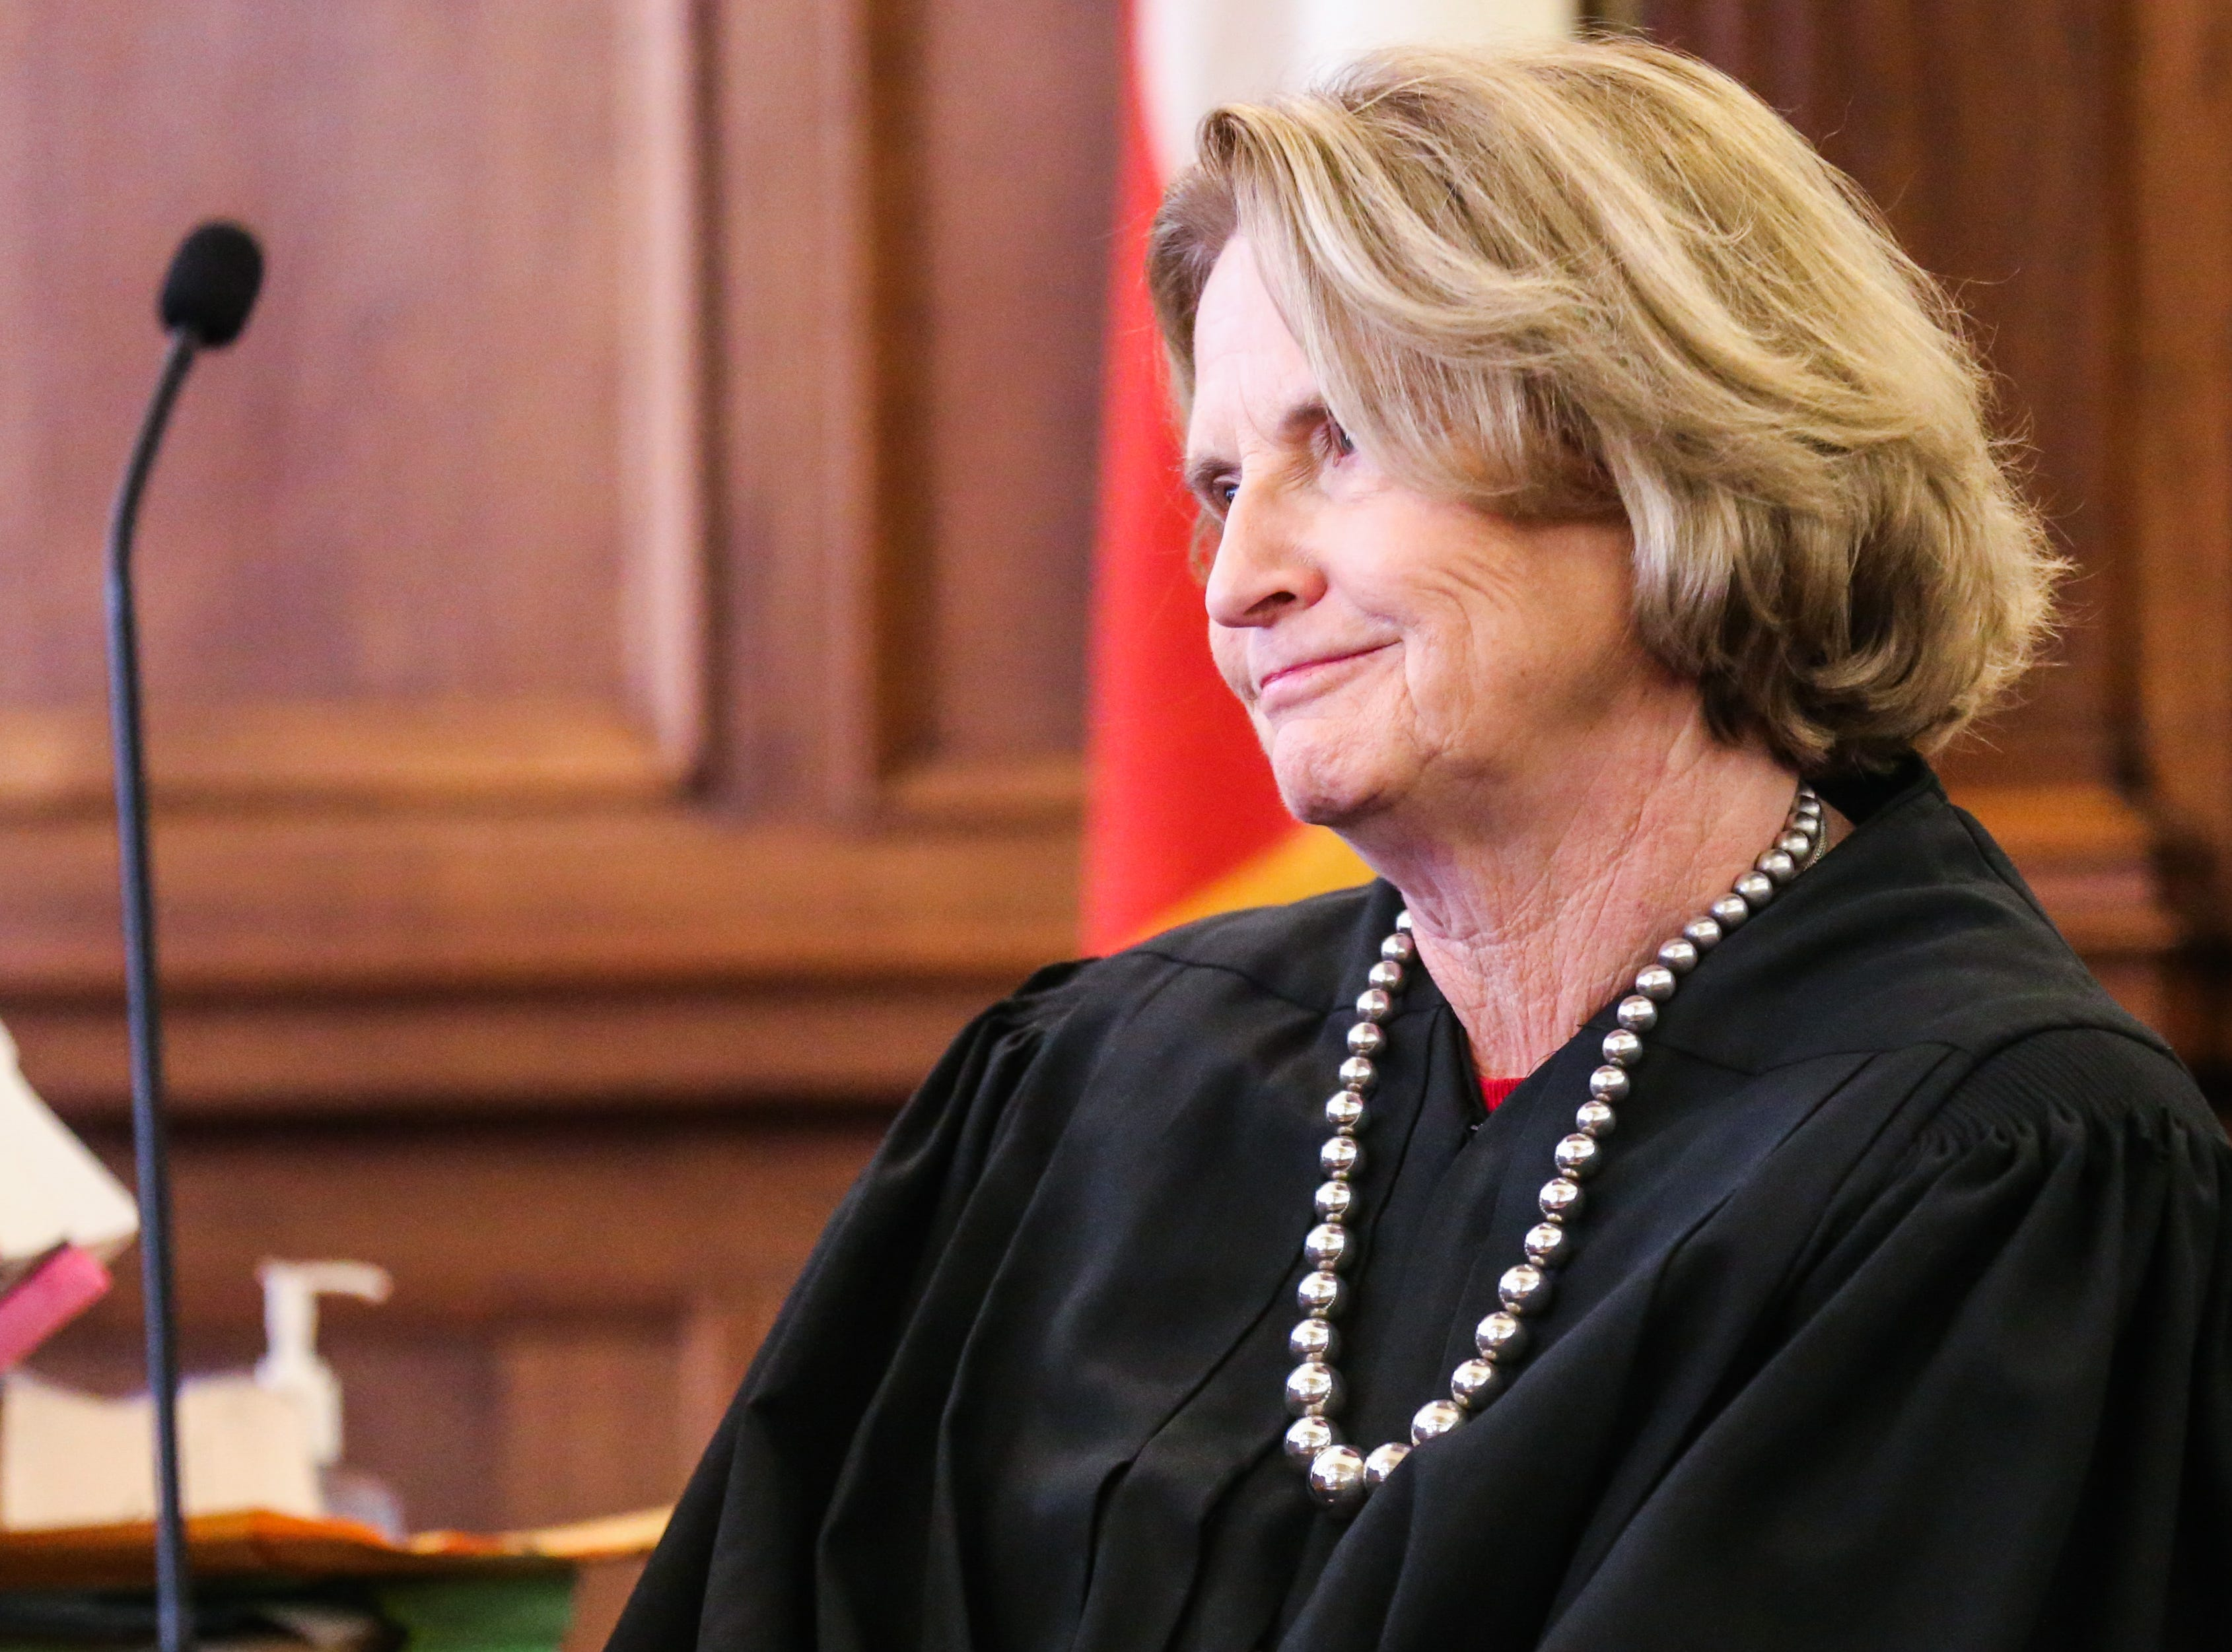 Justice Barbara Walther listens to Carmen Dusek speak during the swearing in ceremony Friday, Dec. 14, 2018, at Tom Green Courthouse.